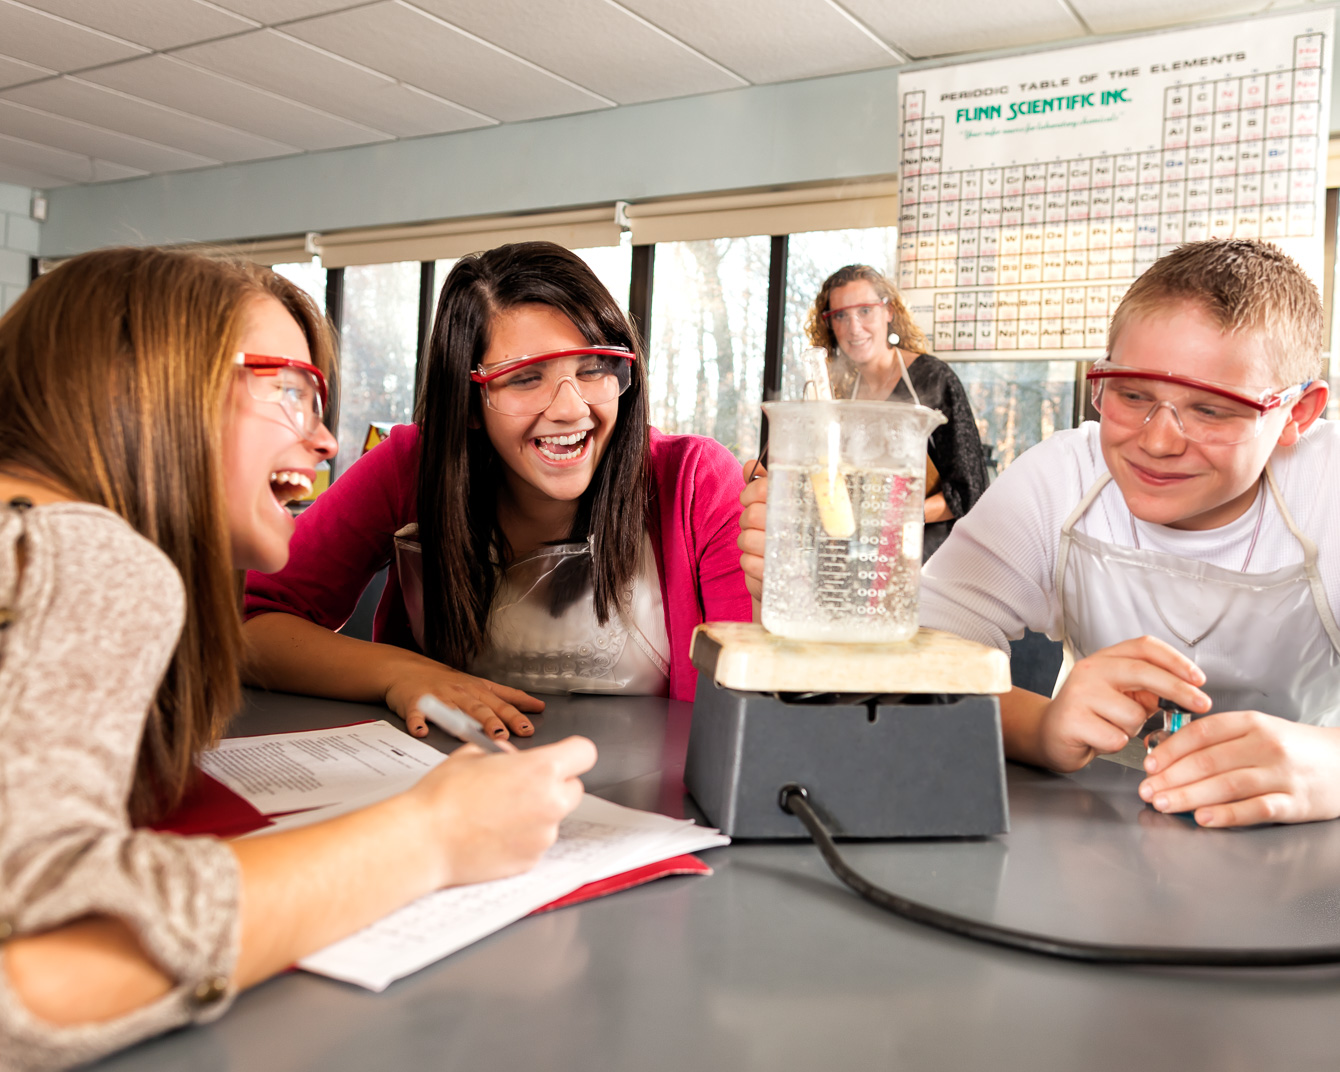 Young Connecticut woman with Multiple Sclerosis laughs with fellow students in high school chemistry class while completing experiment with bunsen burner